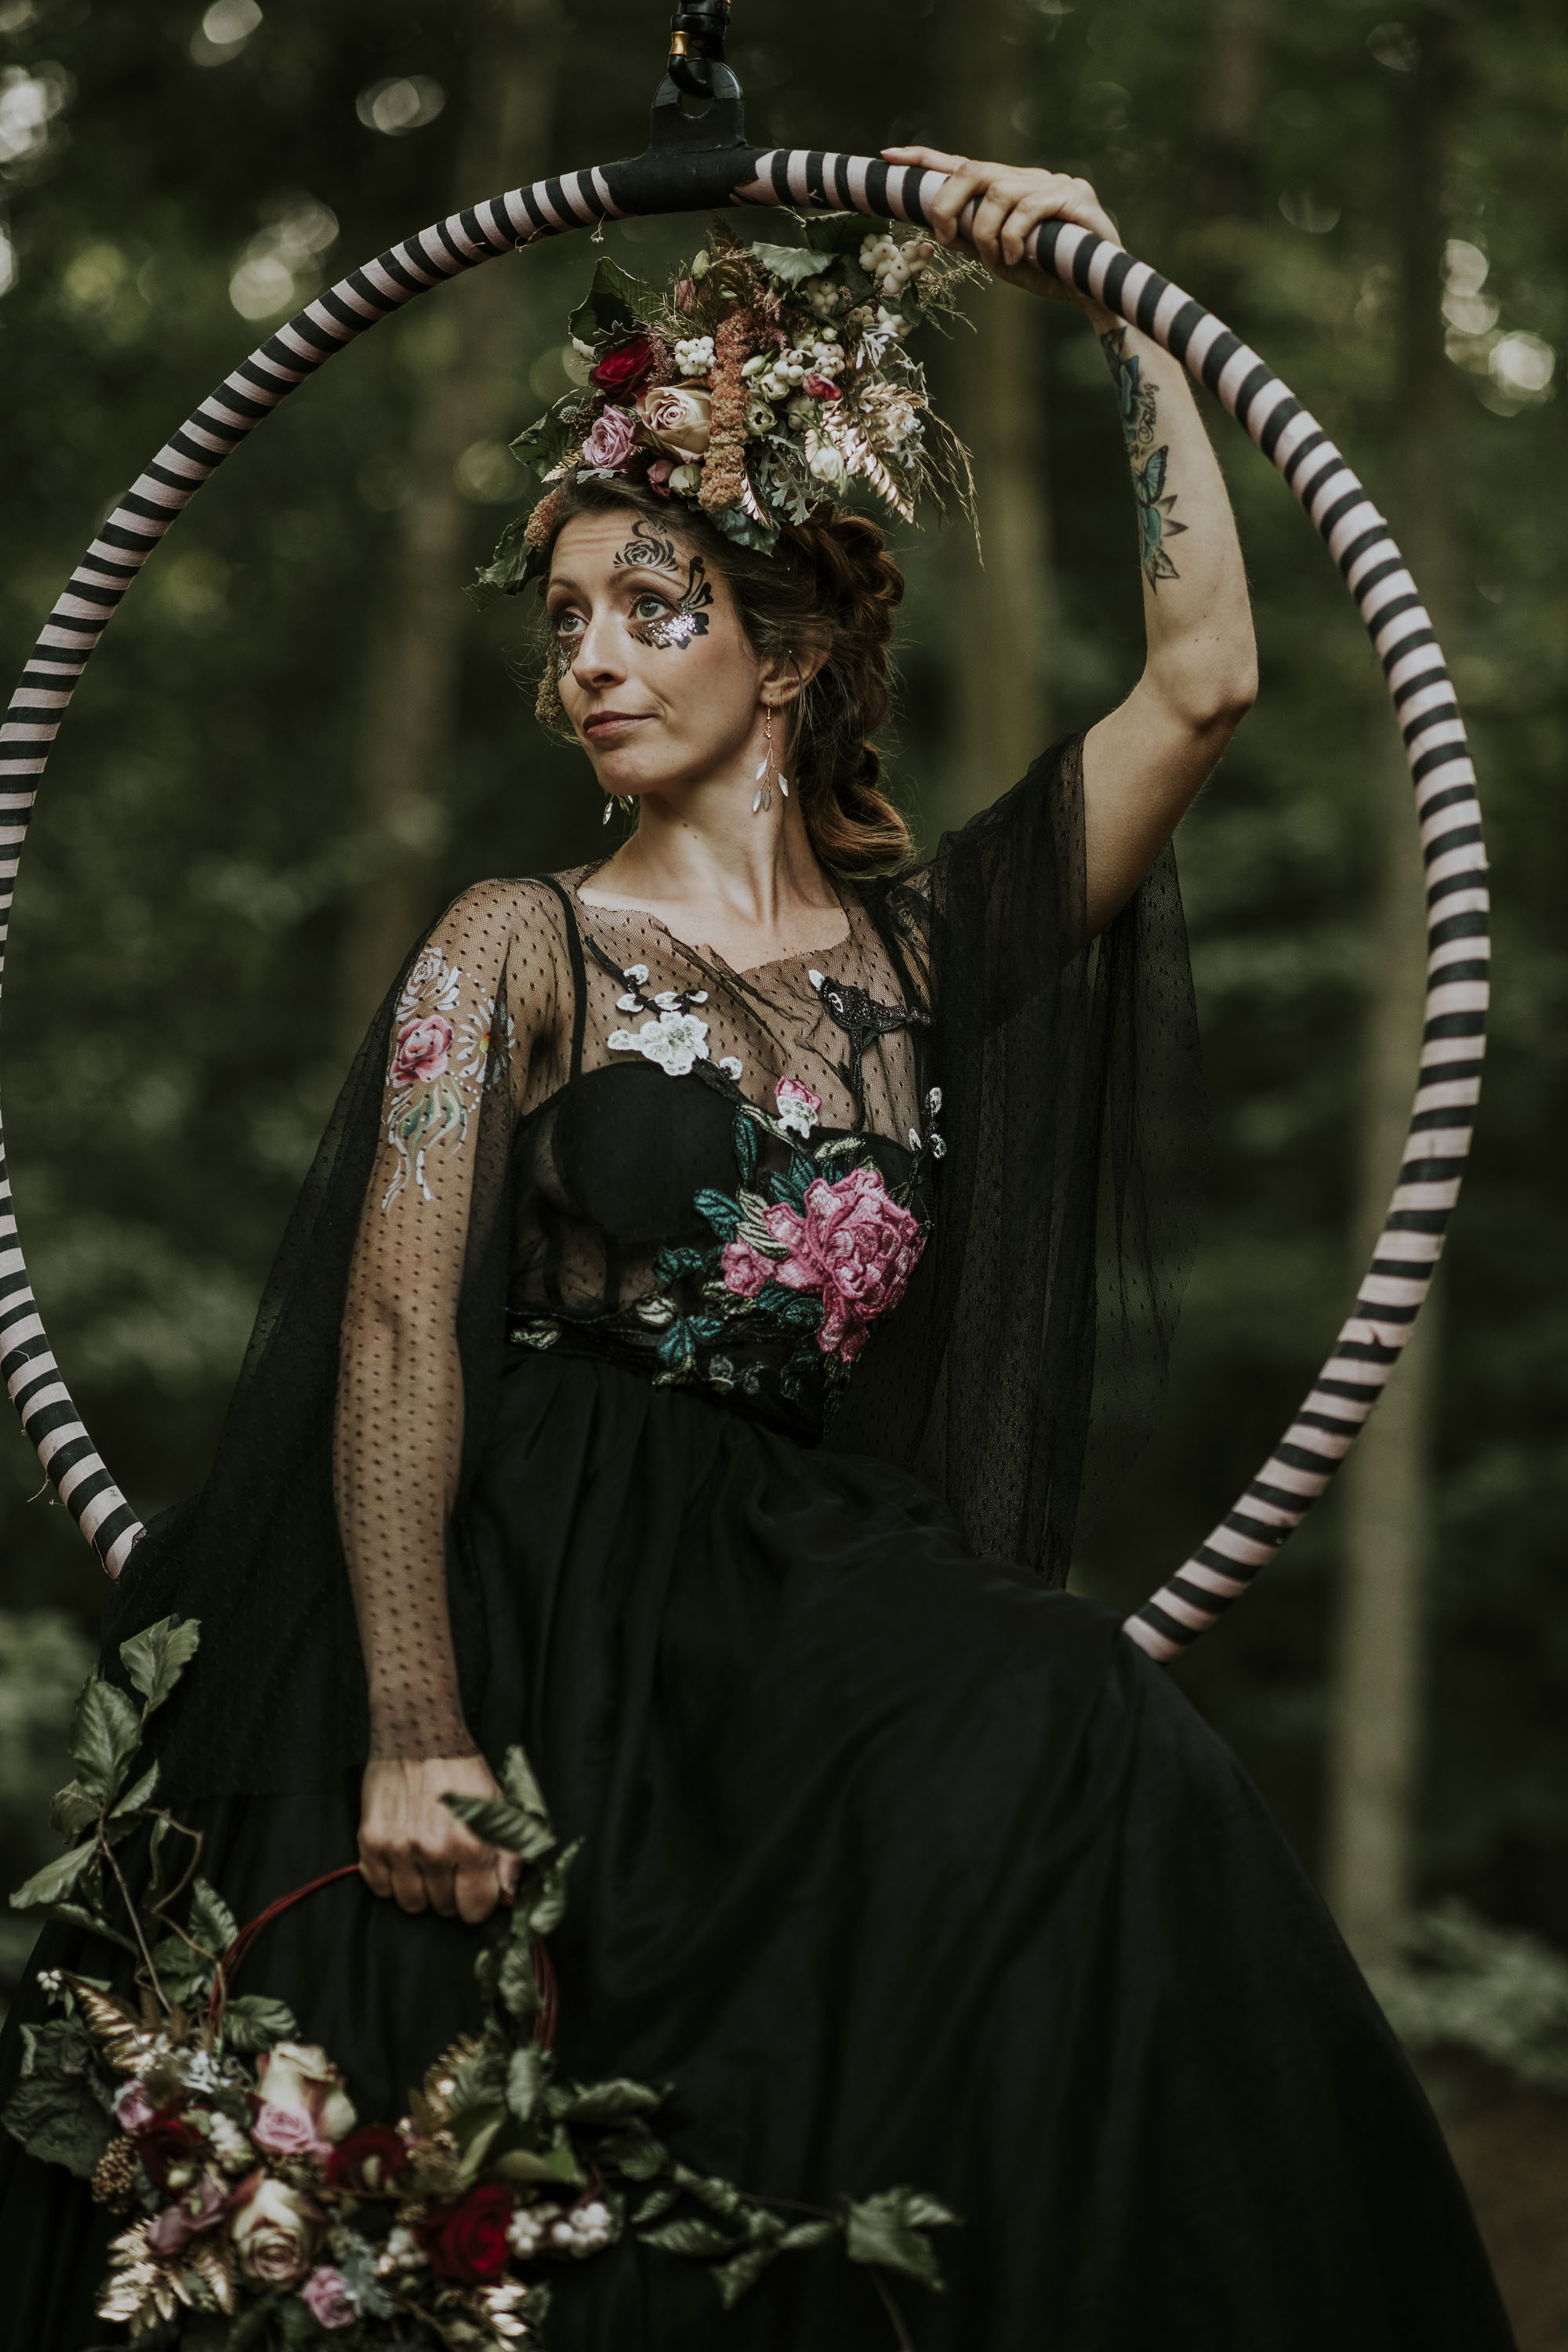 circus wedding - aerial performer bride - black wedding dress - alternative bridal wear - unique bridal look